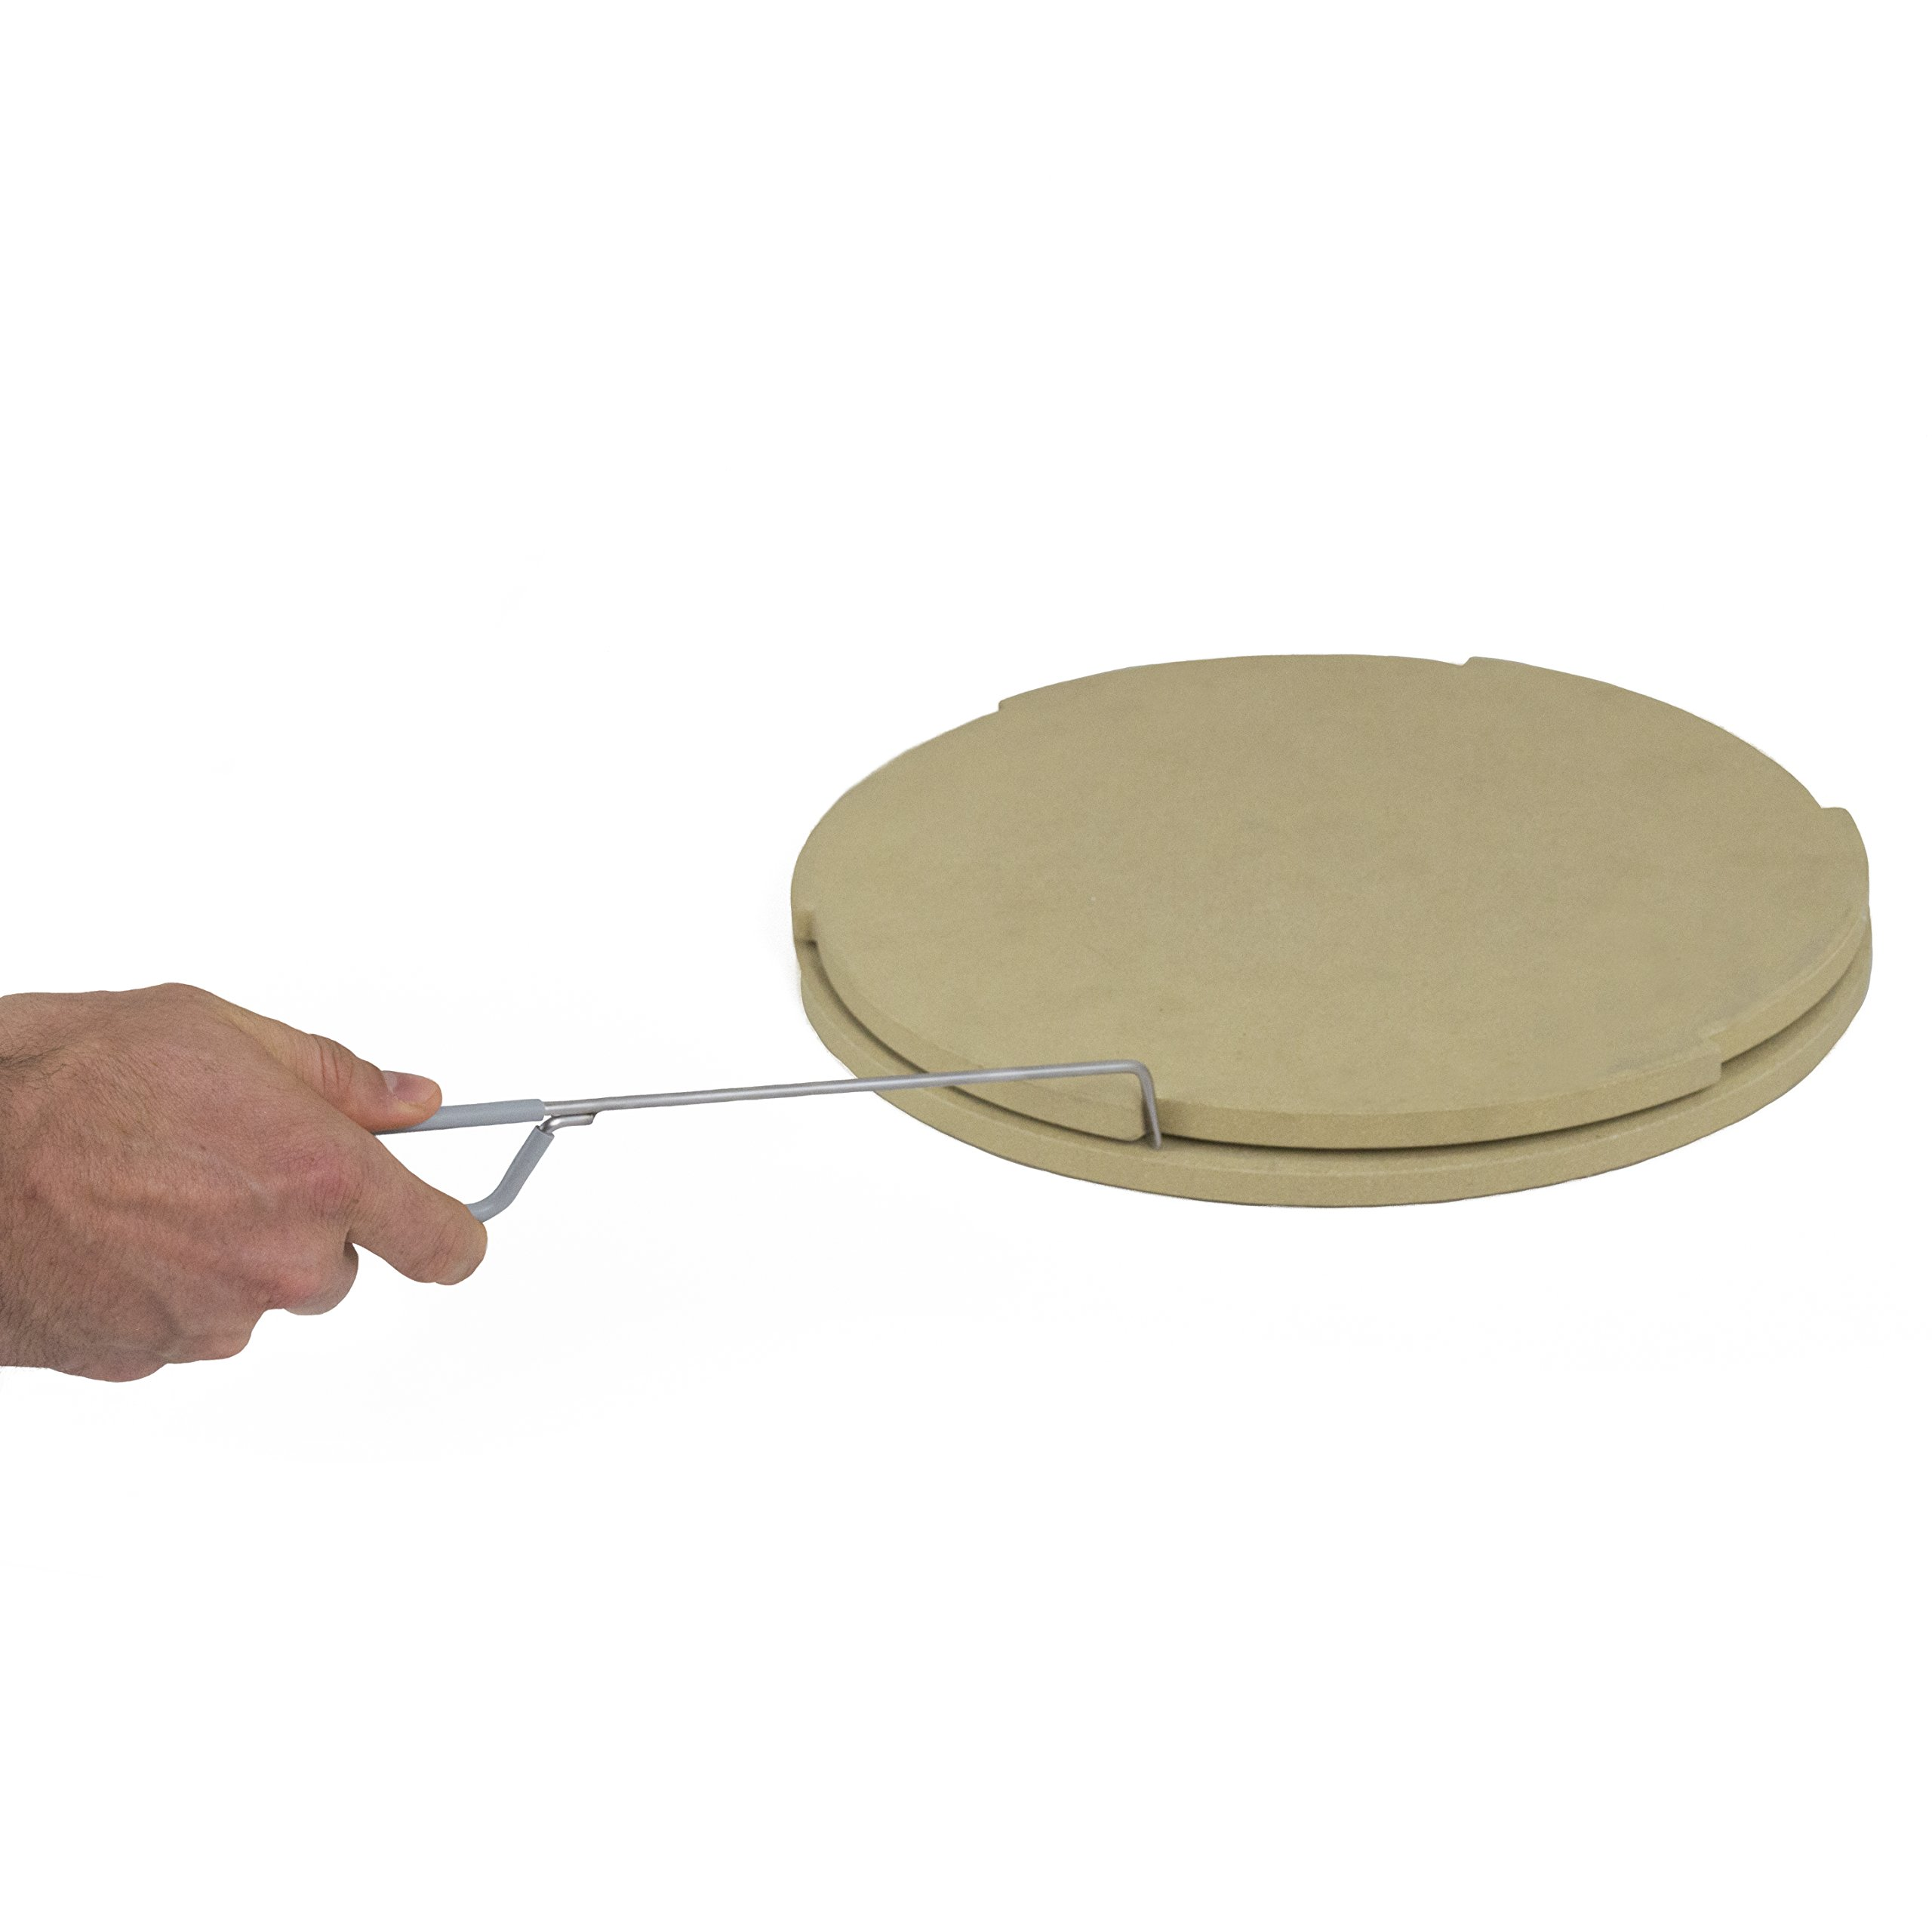 Pizzacraft PC0119 Thermabond Rotating Pizza Stone, 14'' in Diameter, 1.22'' in Height